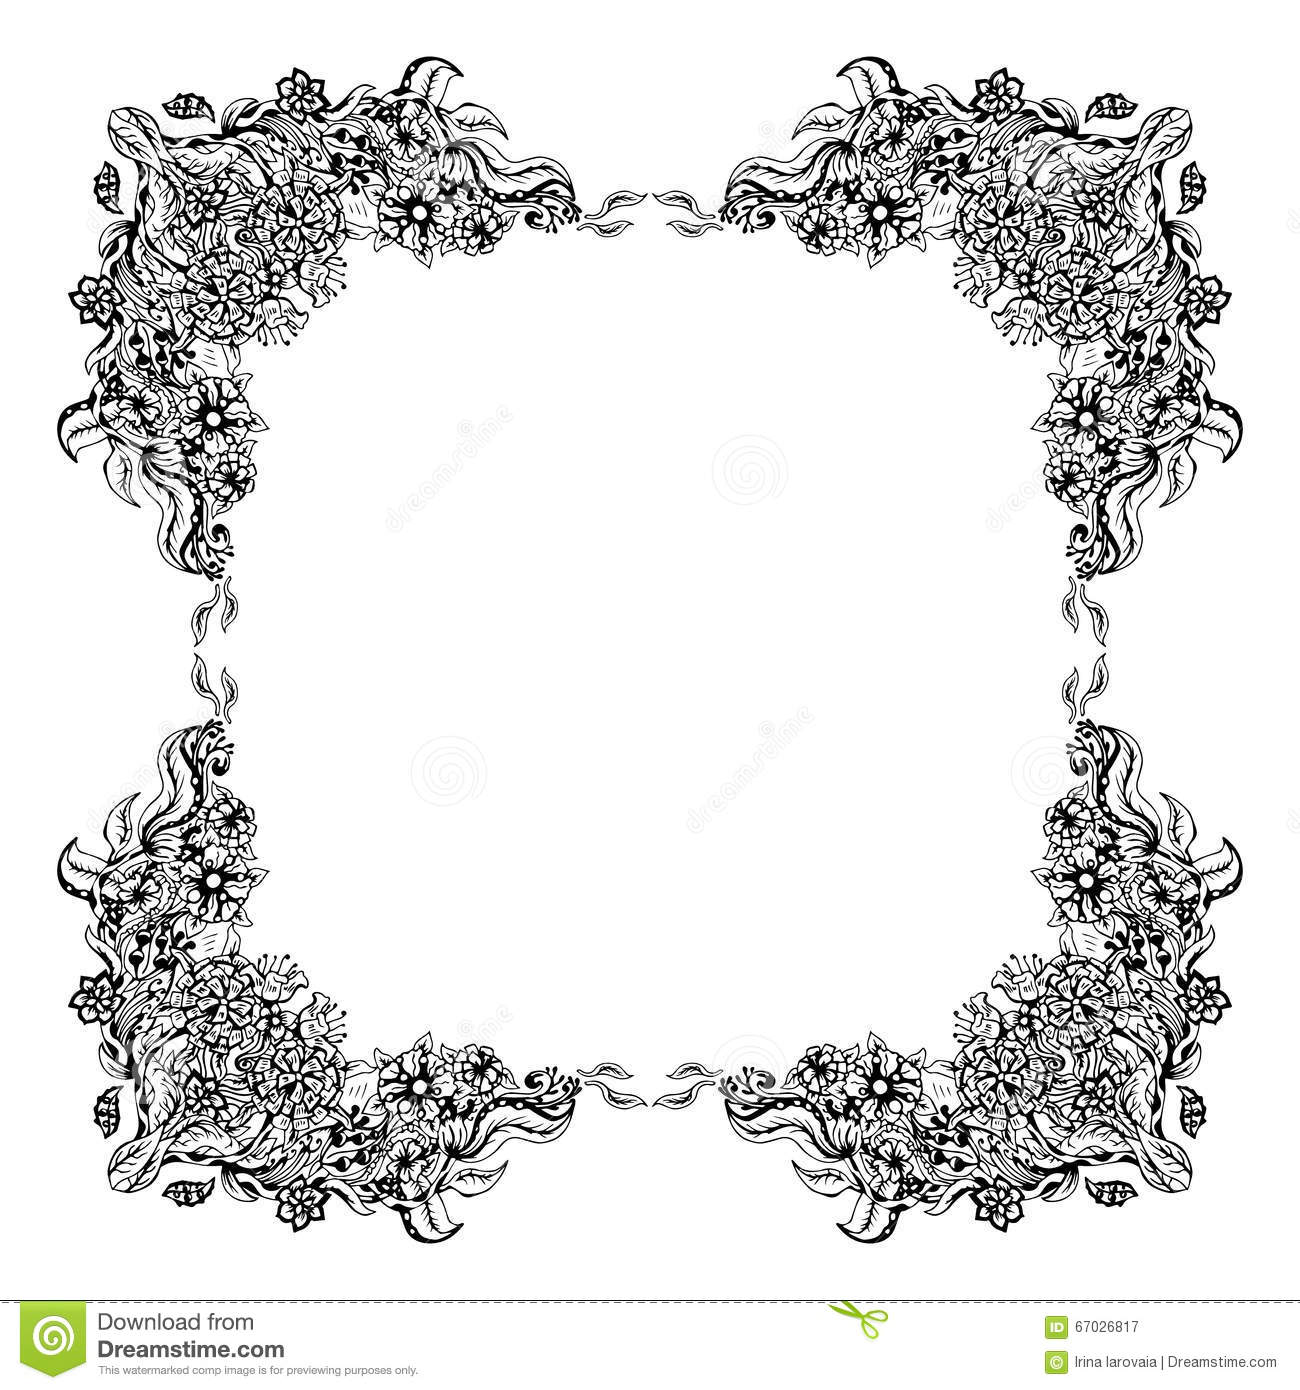 Abstract Black And White Floral Frame Vector Illustration Cloth Garment